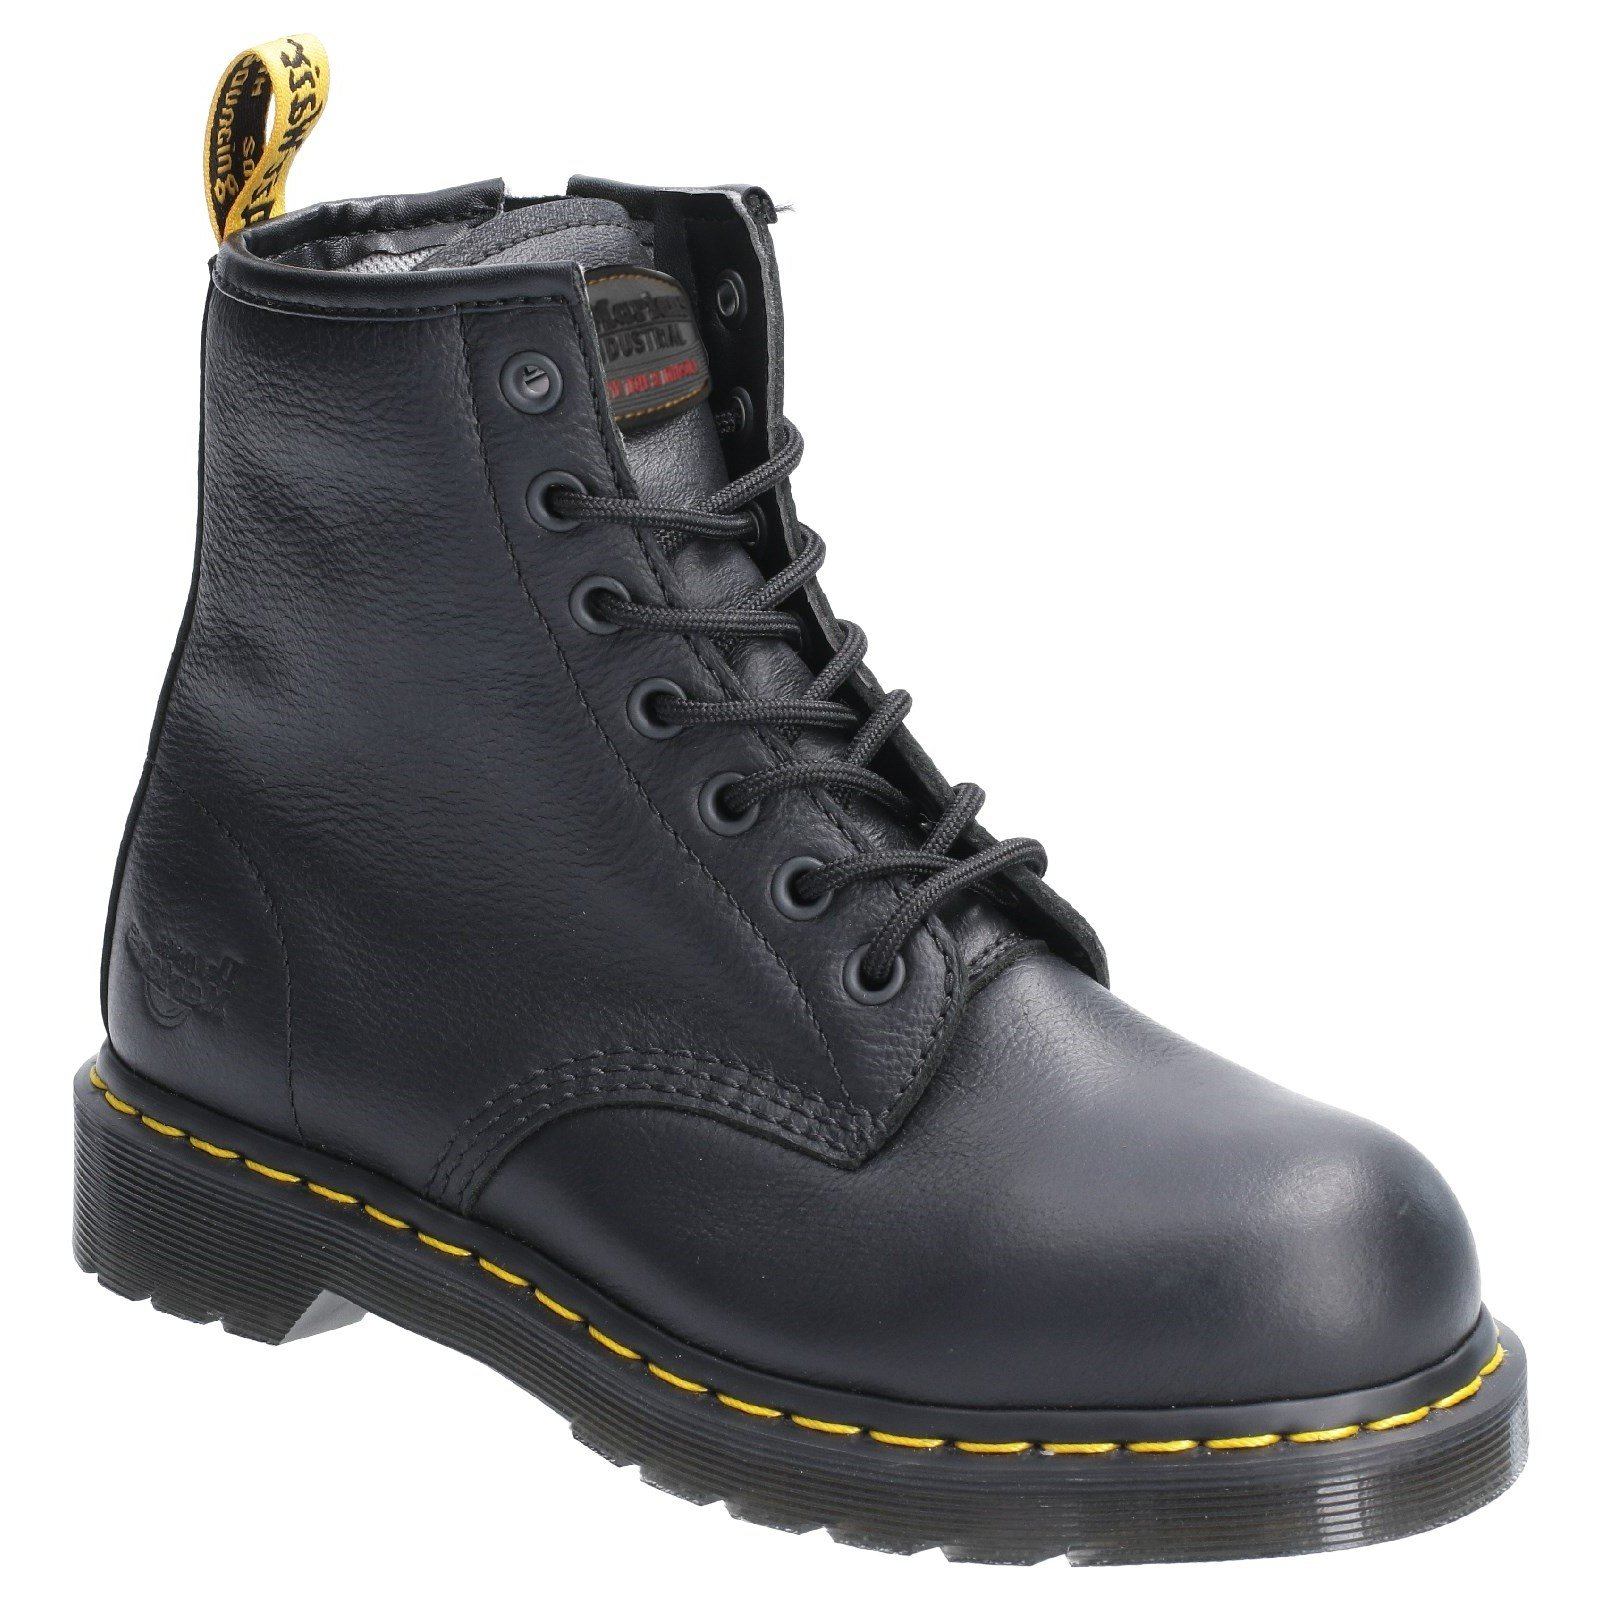 Dr Martens Women's Maple Zip Lace Up Safety Boot Various Colours 29515 - Black 5